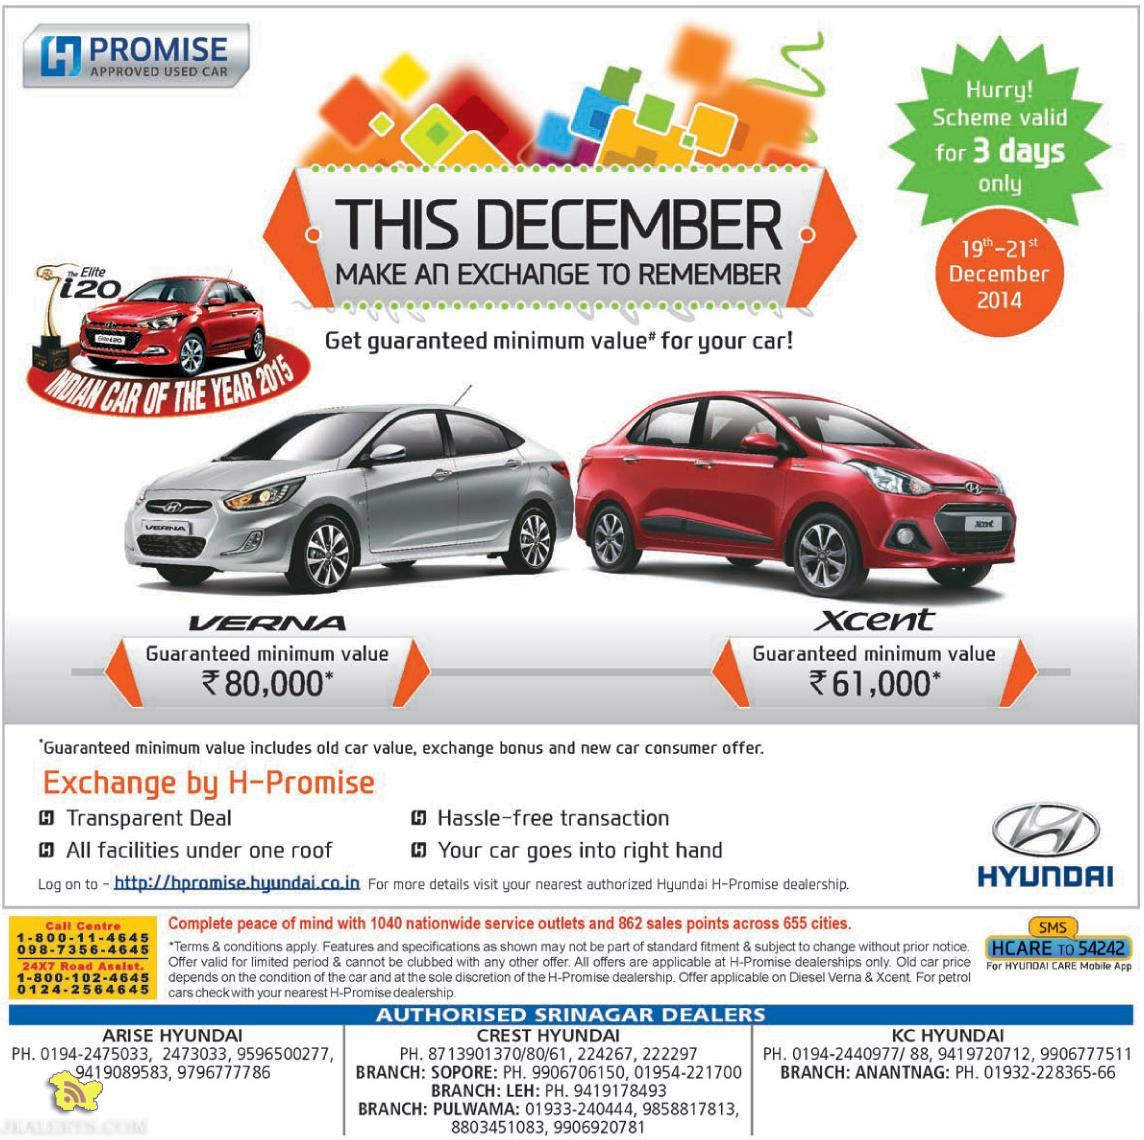 Hyundai offer this December make an exchange to remember